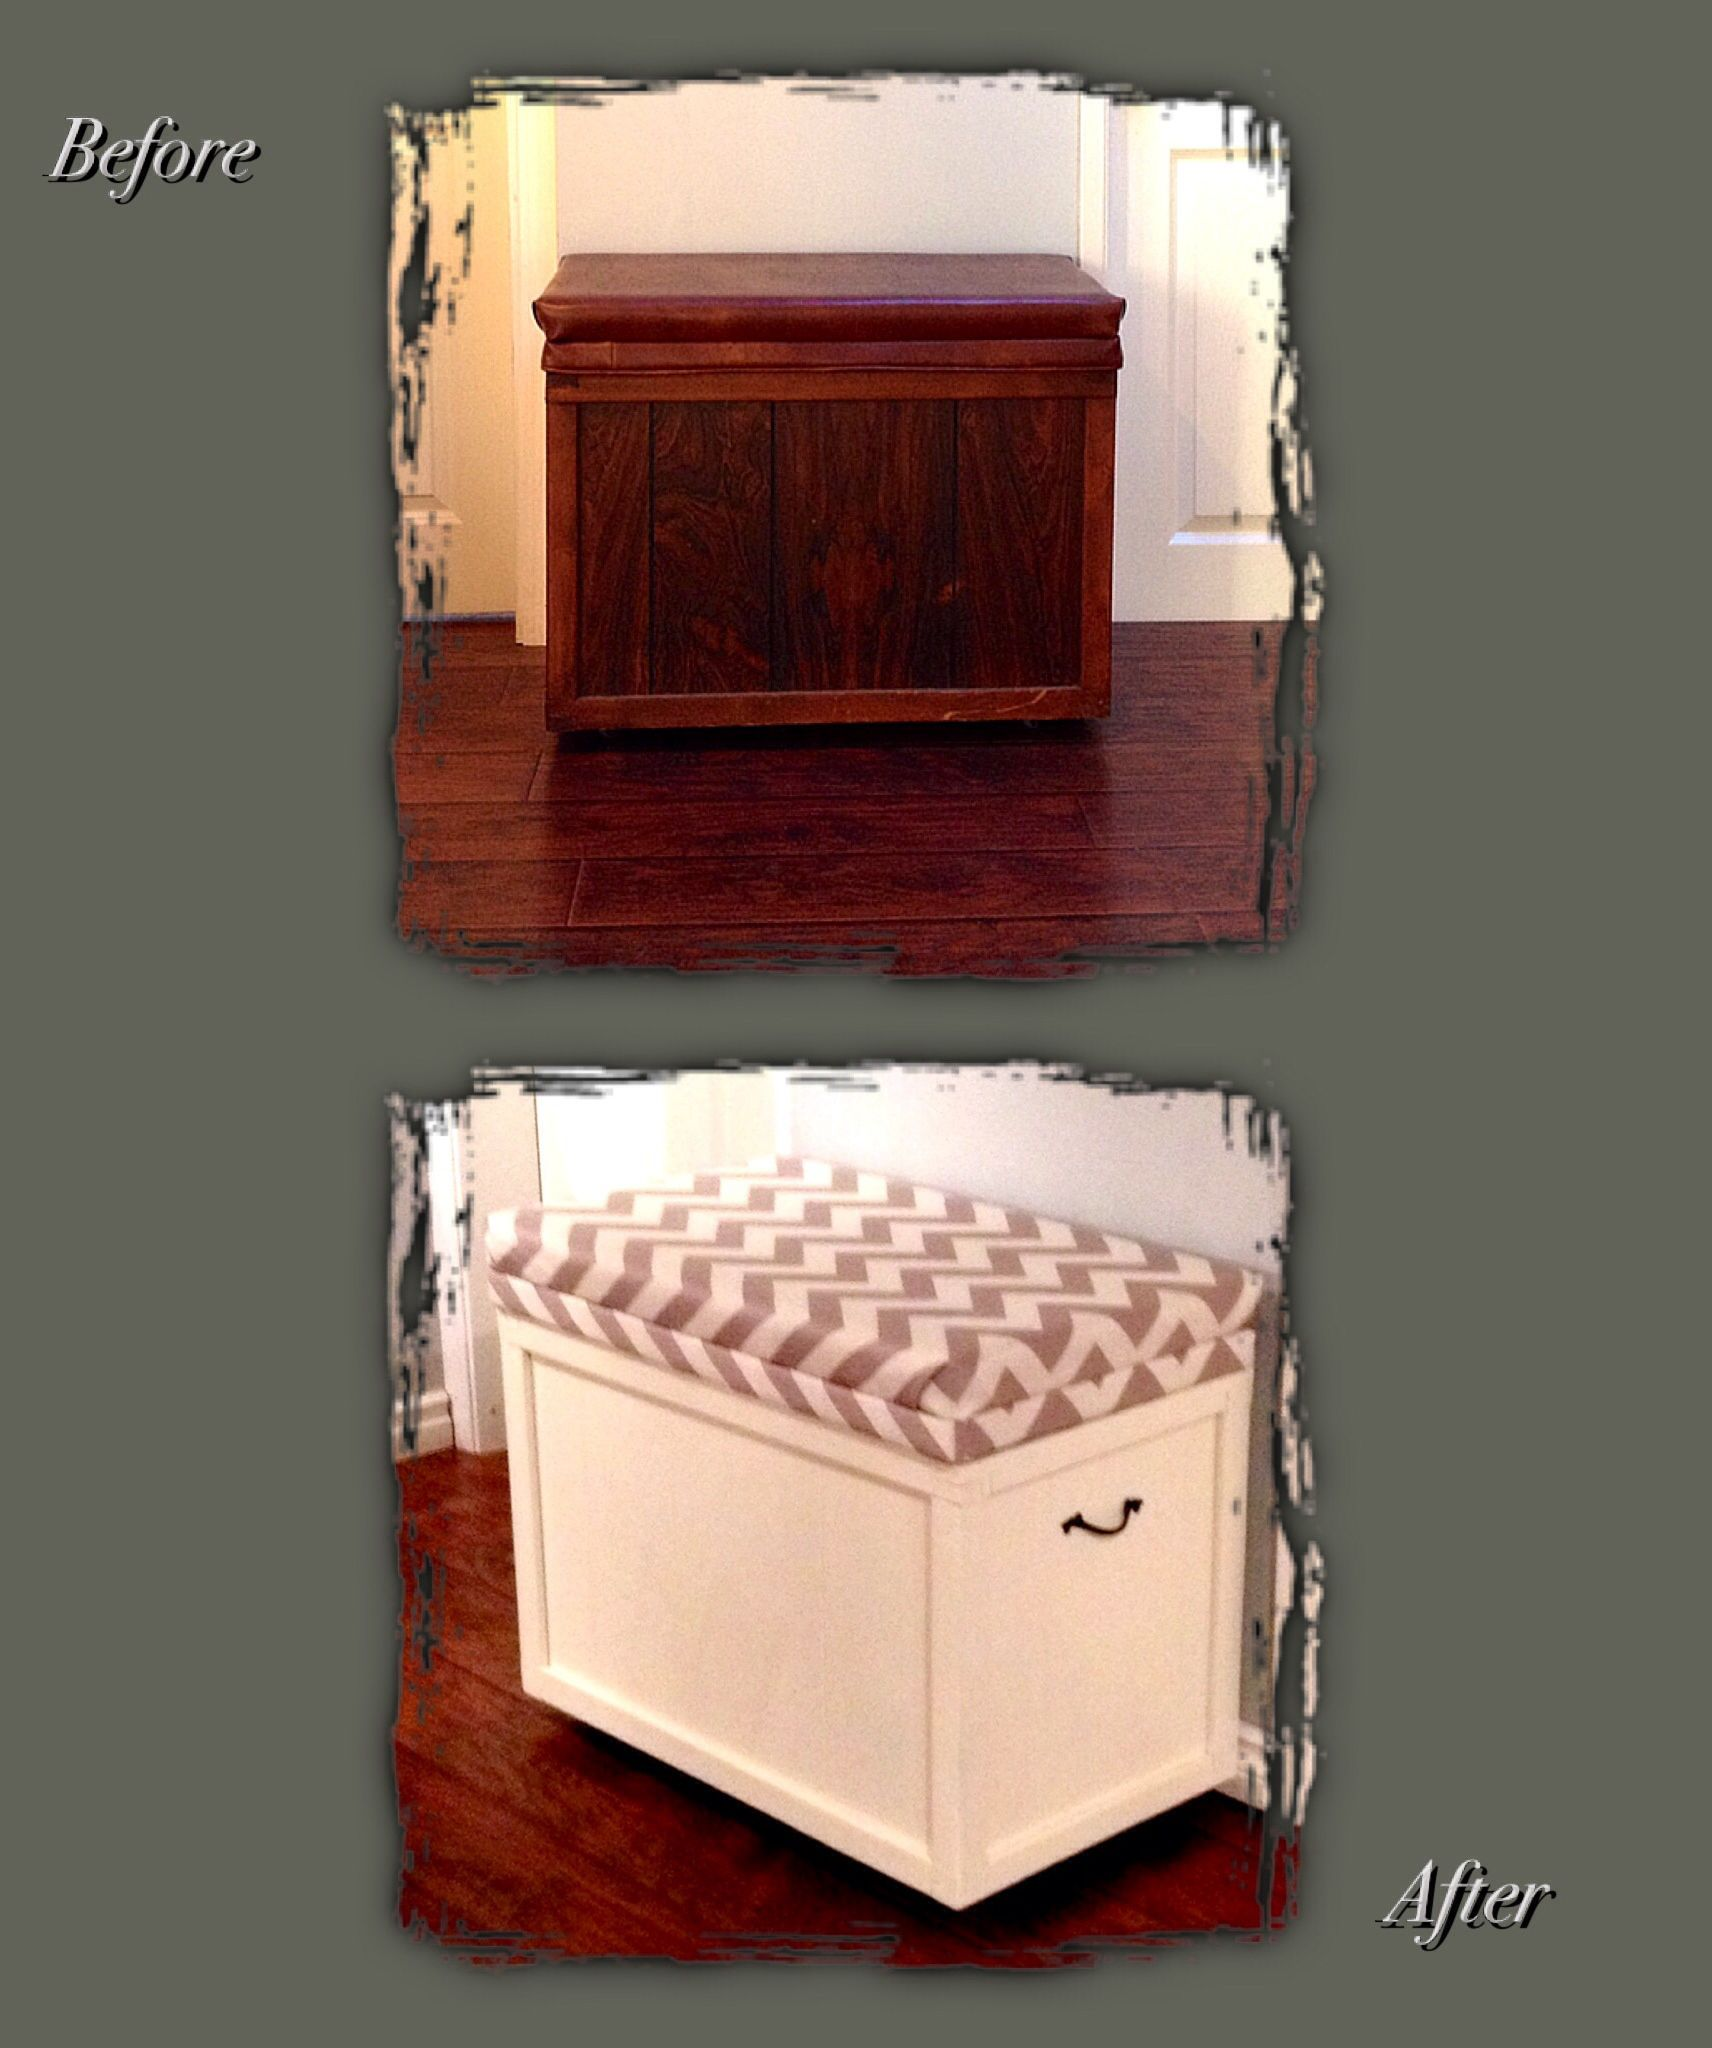 Strange Before After Old Firewood Storage Bench Painted And New Dailytribune Chair Design For Home Dailytribuneorg